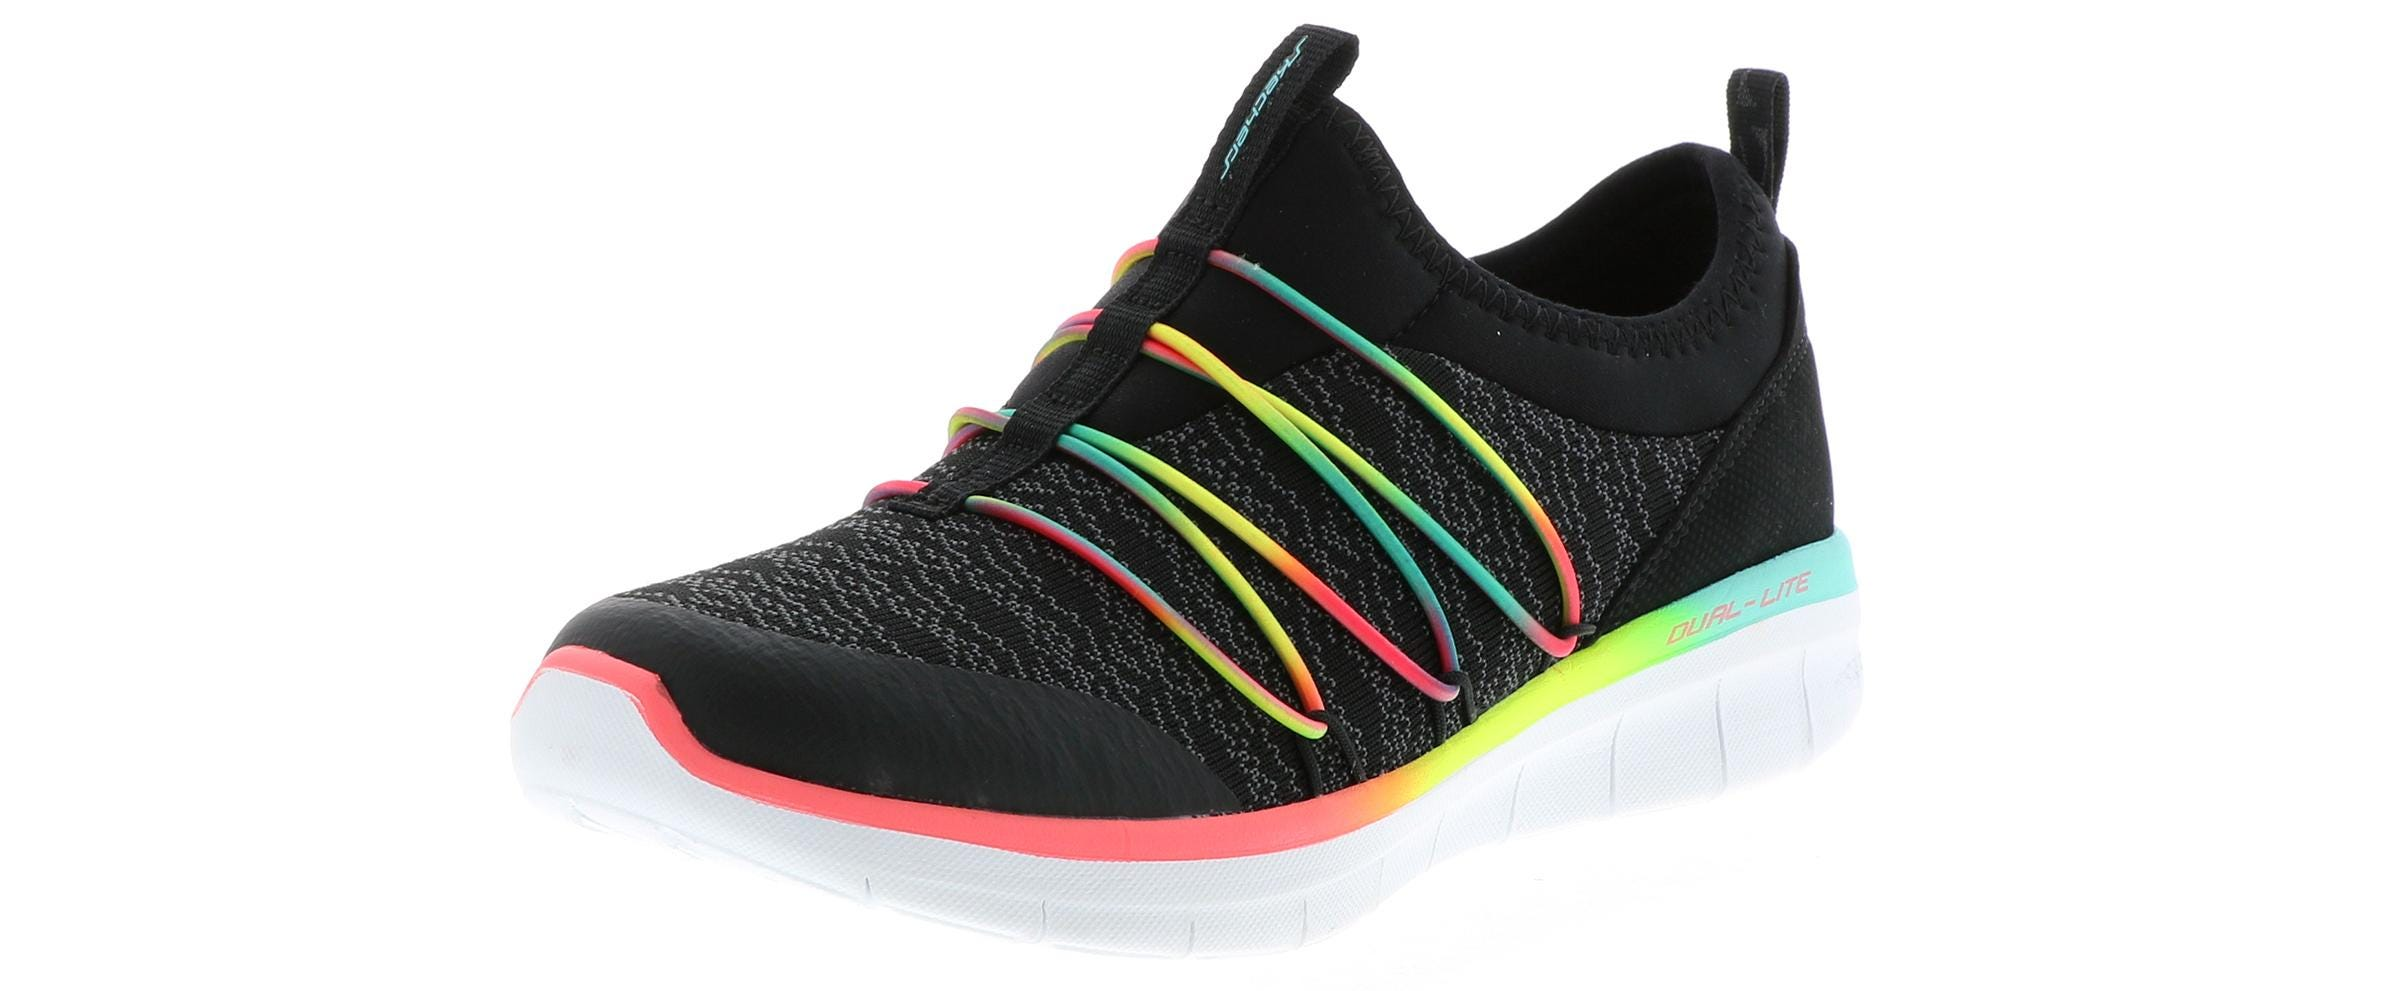 Details about Women's Skechers SYNERGY 2.0 SIMPLY CHIC 12379BKMT Black Multi Shoes